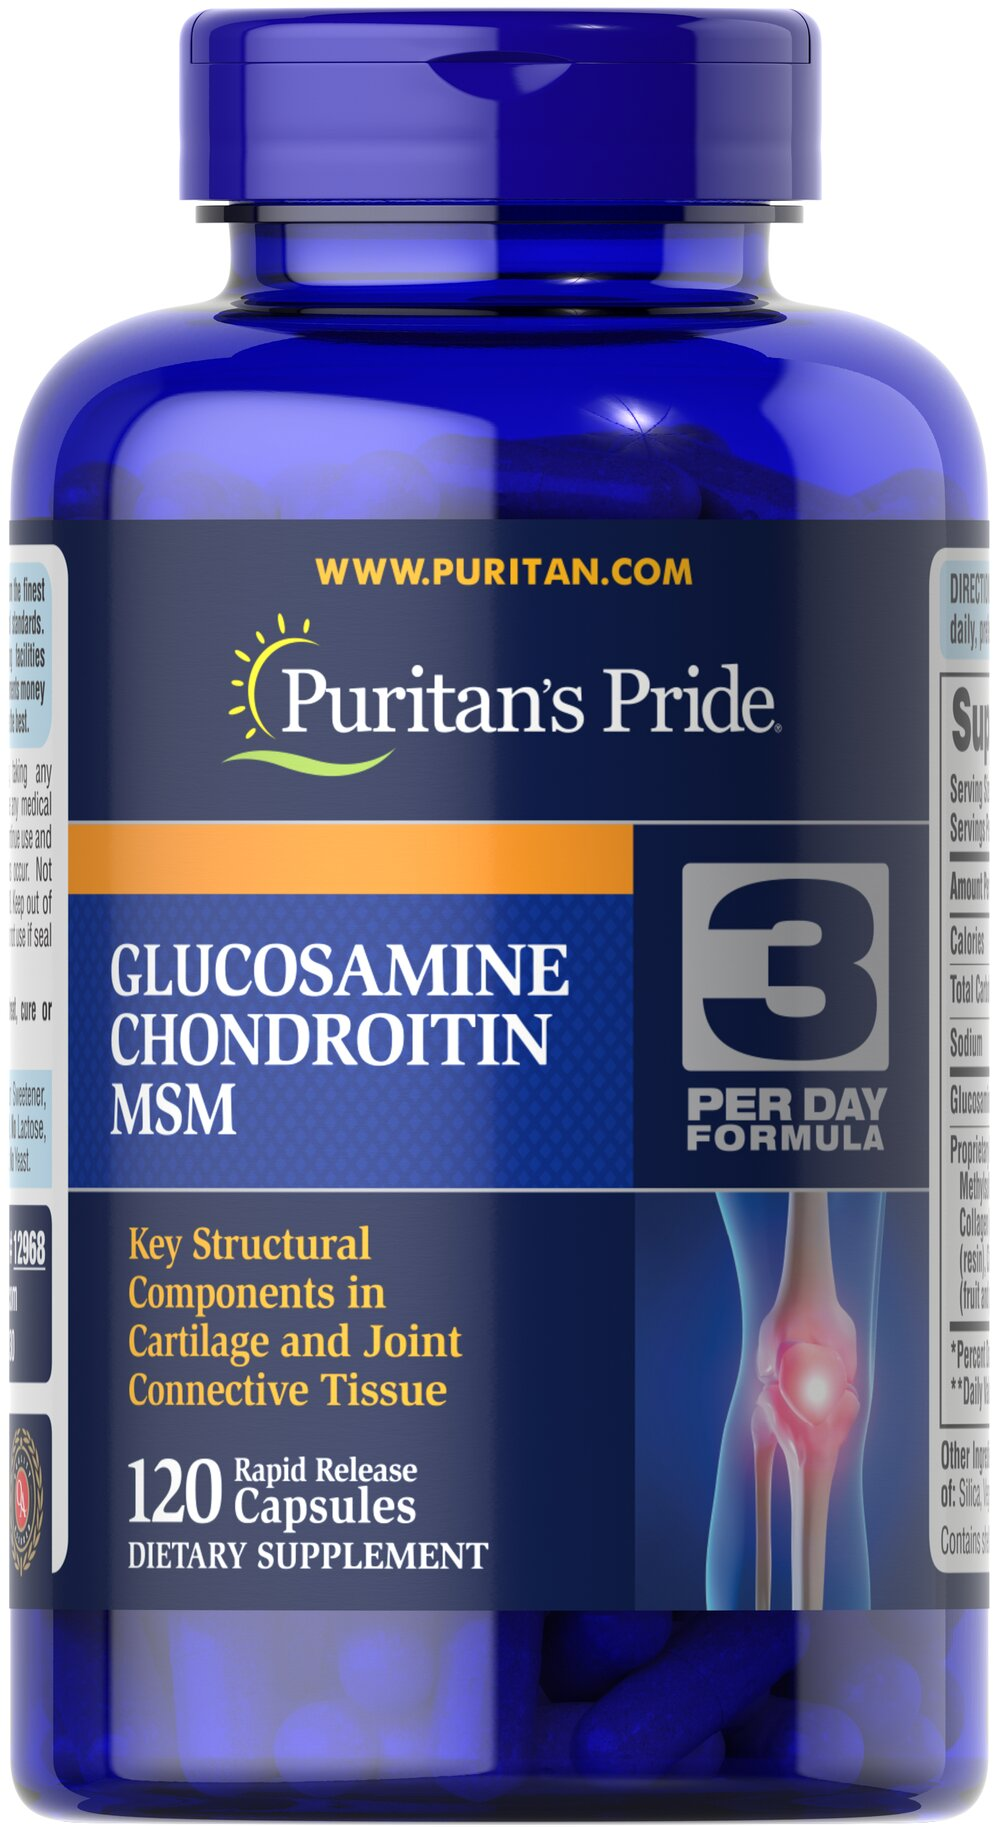 Double Strength Glucosamine, Chondroitin & MSM Joint Soother® <p>Combines the top three structural components found in popular joint support products — Glucosamine, Chondroitin and MSM — with amino and herbal support from Collagen and Boswellia Serrata**</p><p>This high-quality formula delivers 1,500 mg of Glucosamine HCI to help  support cartilage, lubricate the joints, and helps with occasional joint stress due to exercise or physical activity**</p> 120 Capsule